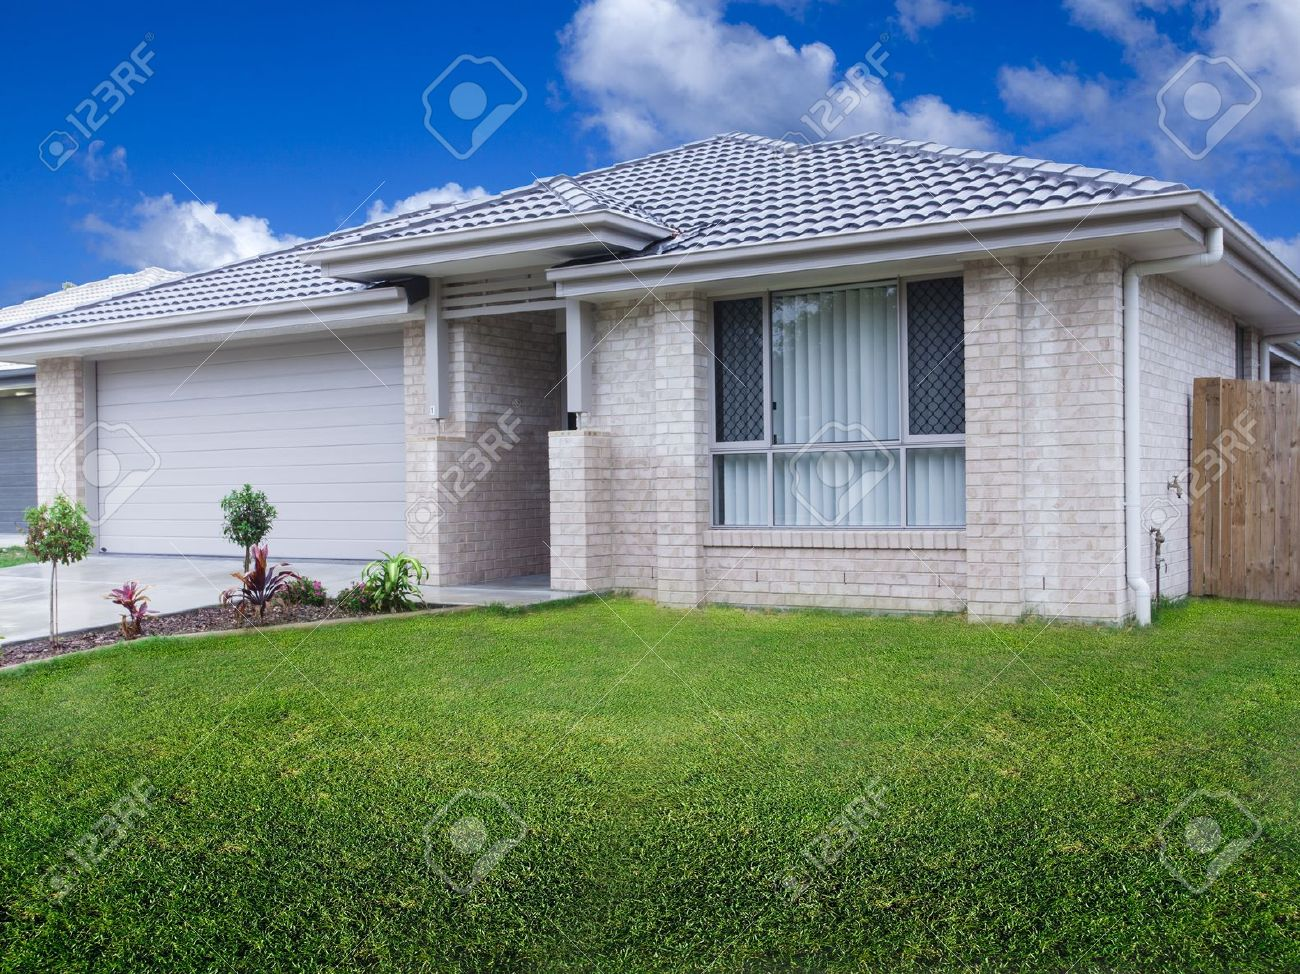 New duplex house front Stock Photo - 18456162